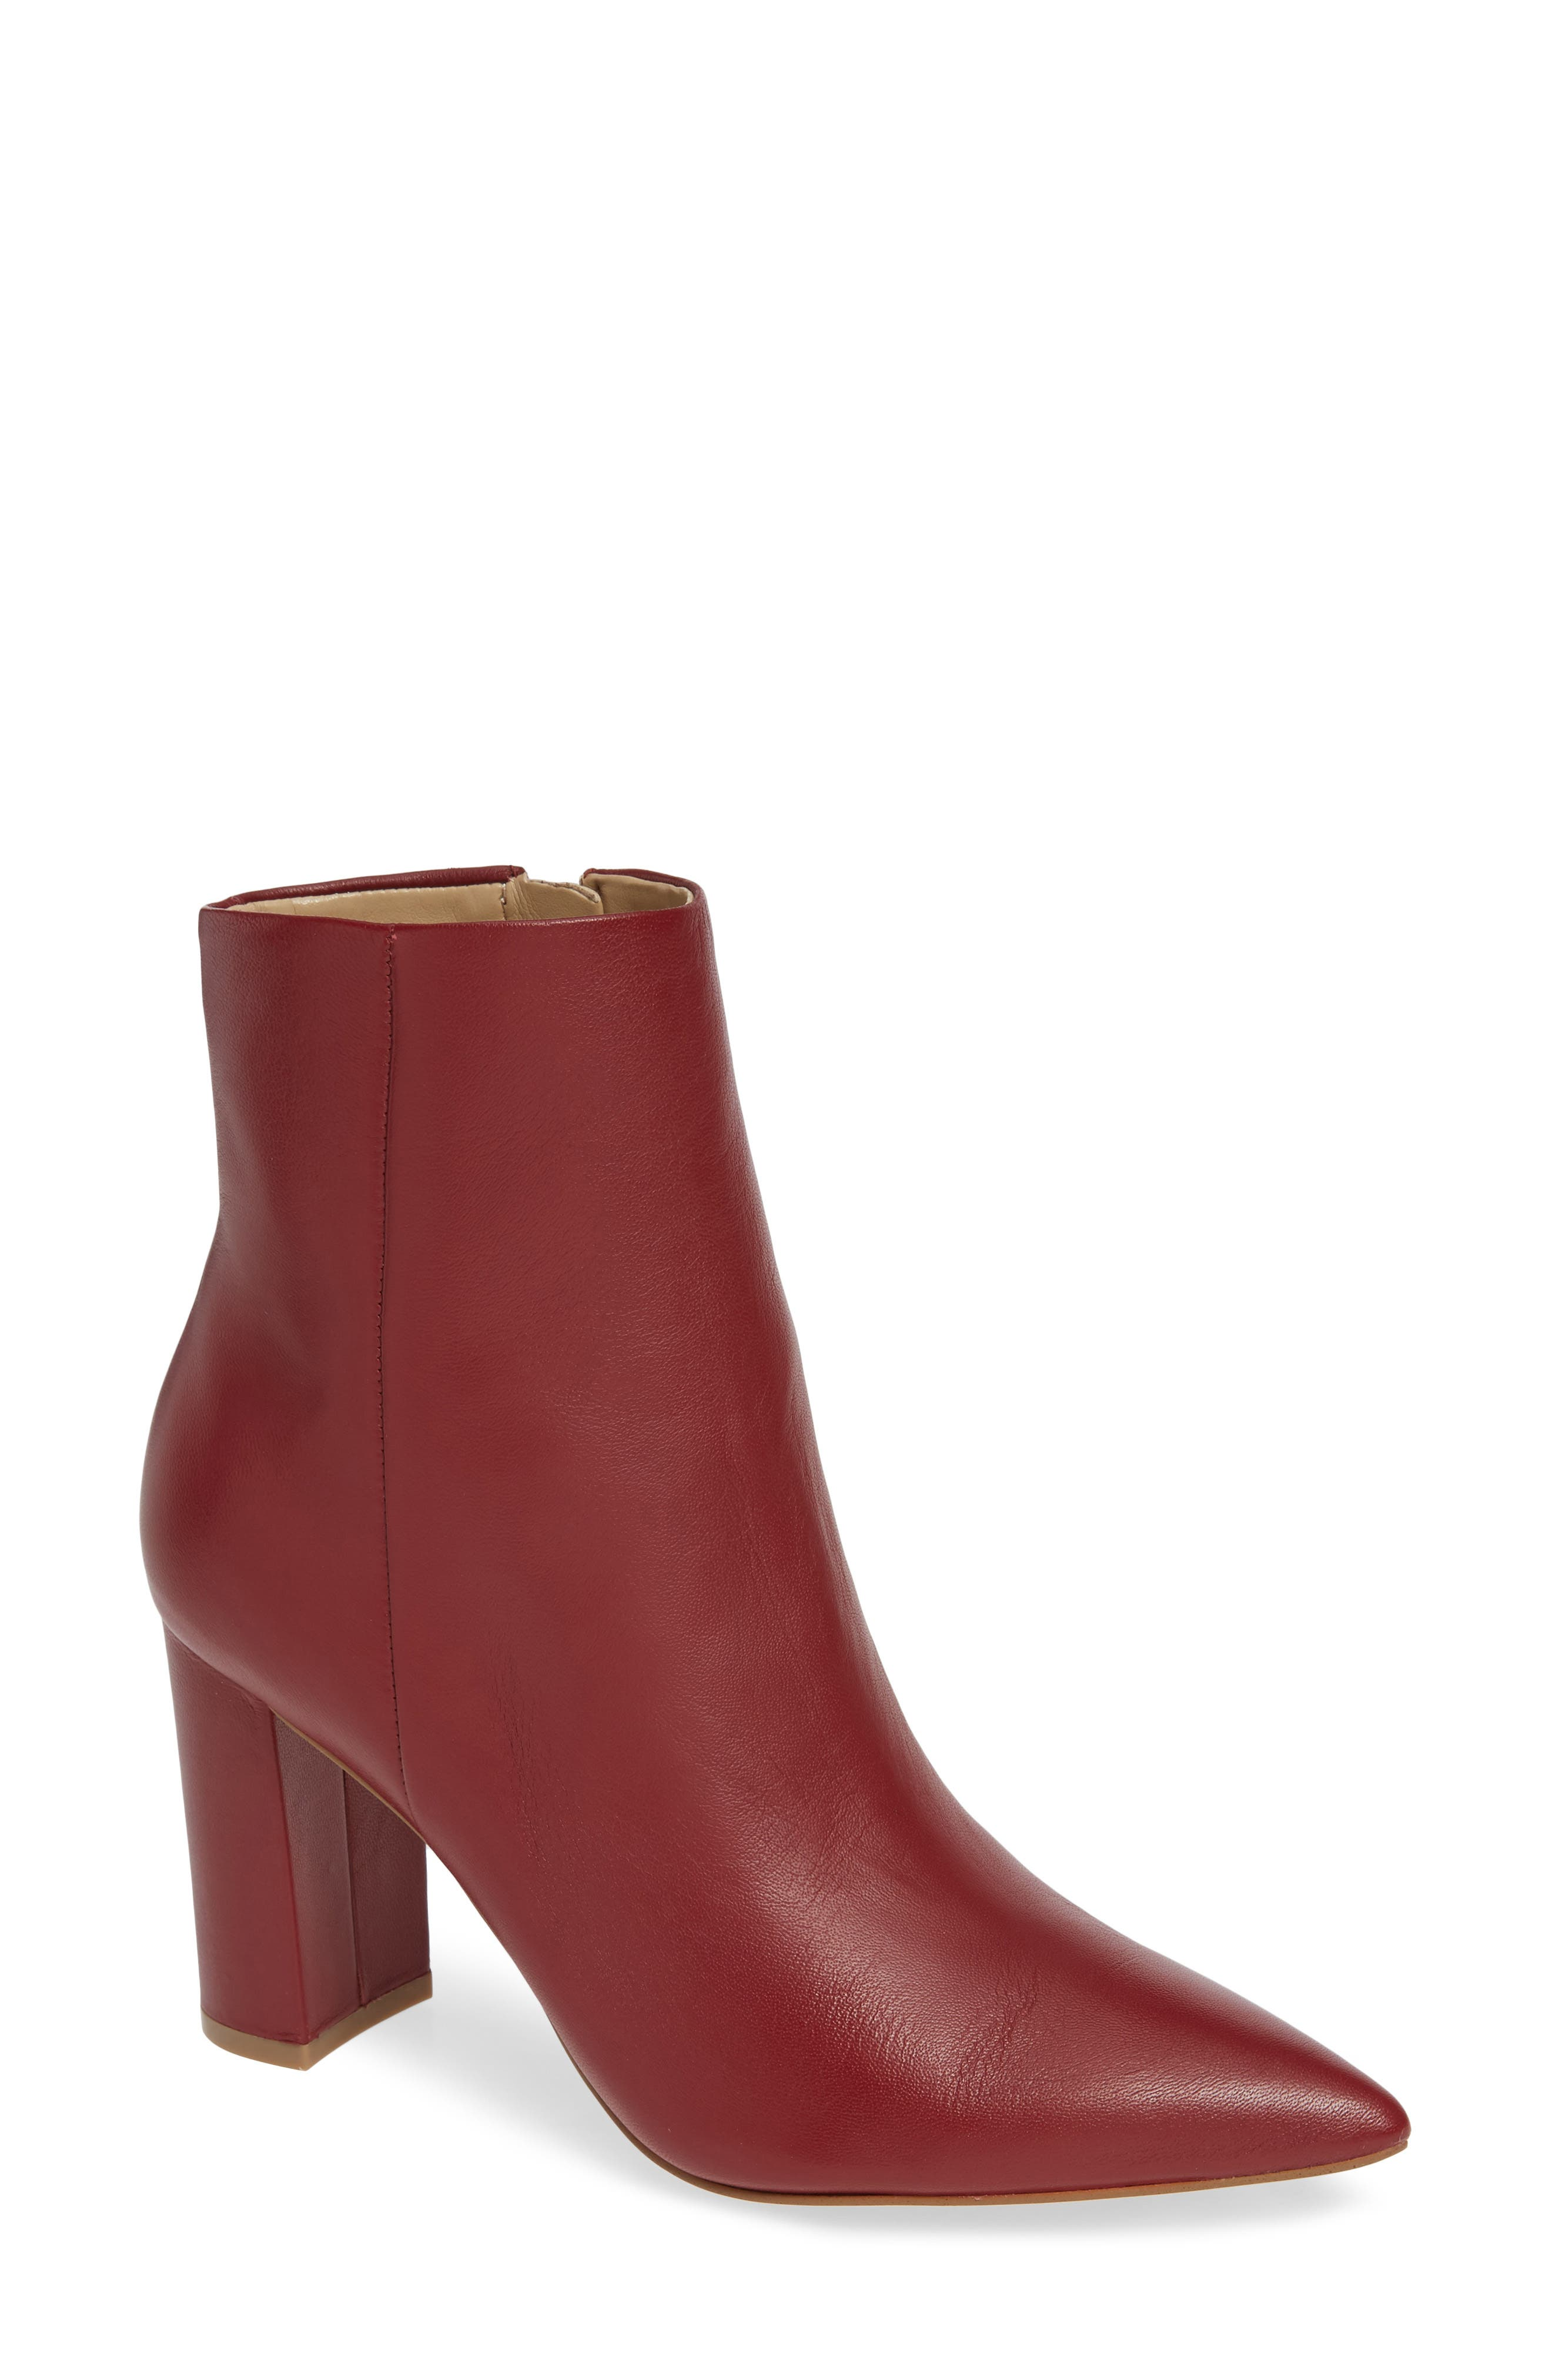 Ulani Pointy Toe Bootie,                             Main thumbnail 1, color,                             RED LEATHER